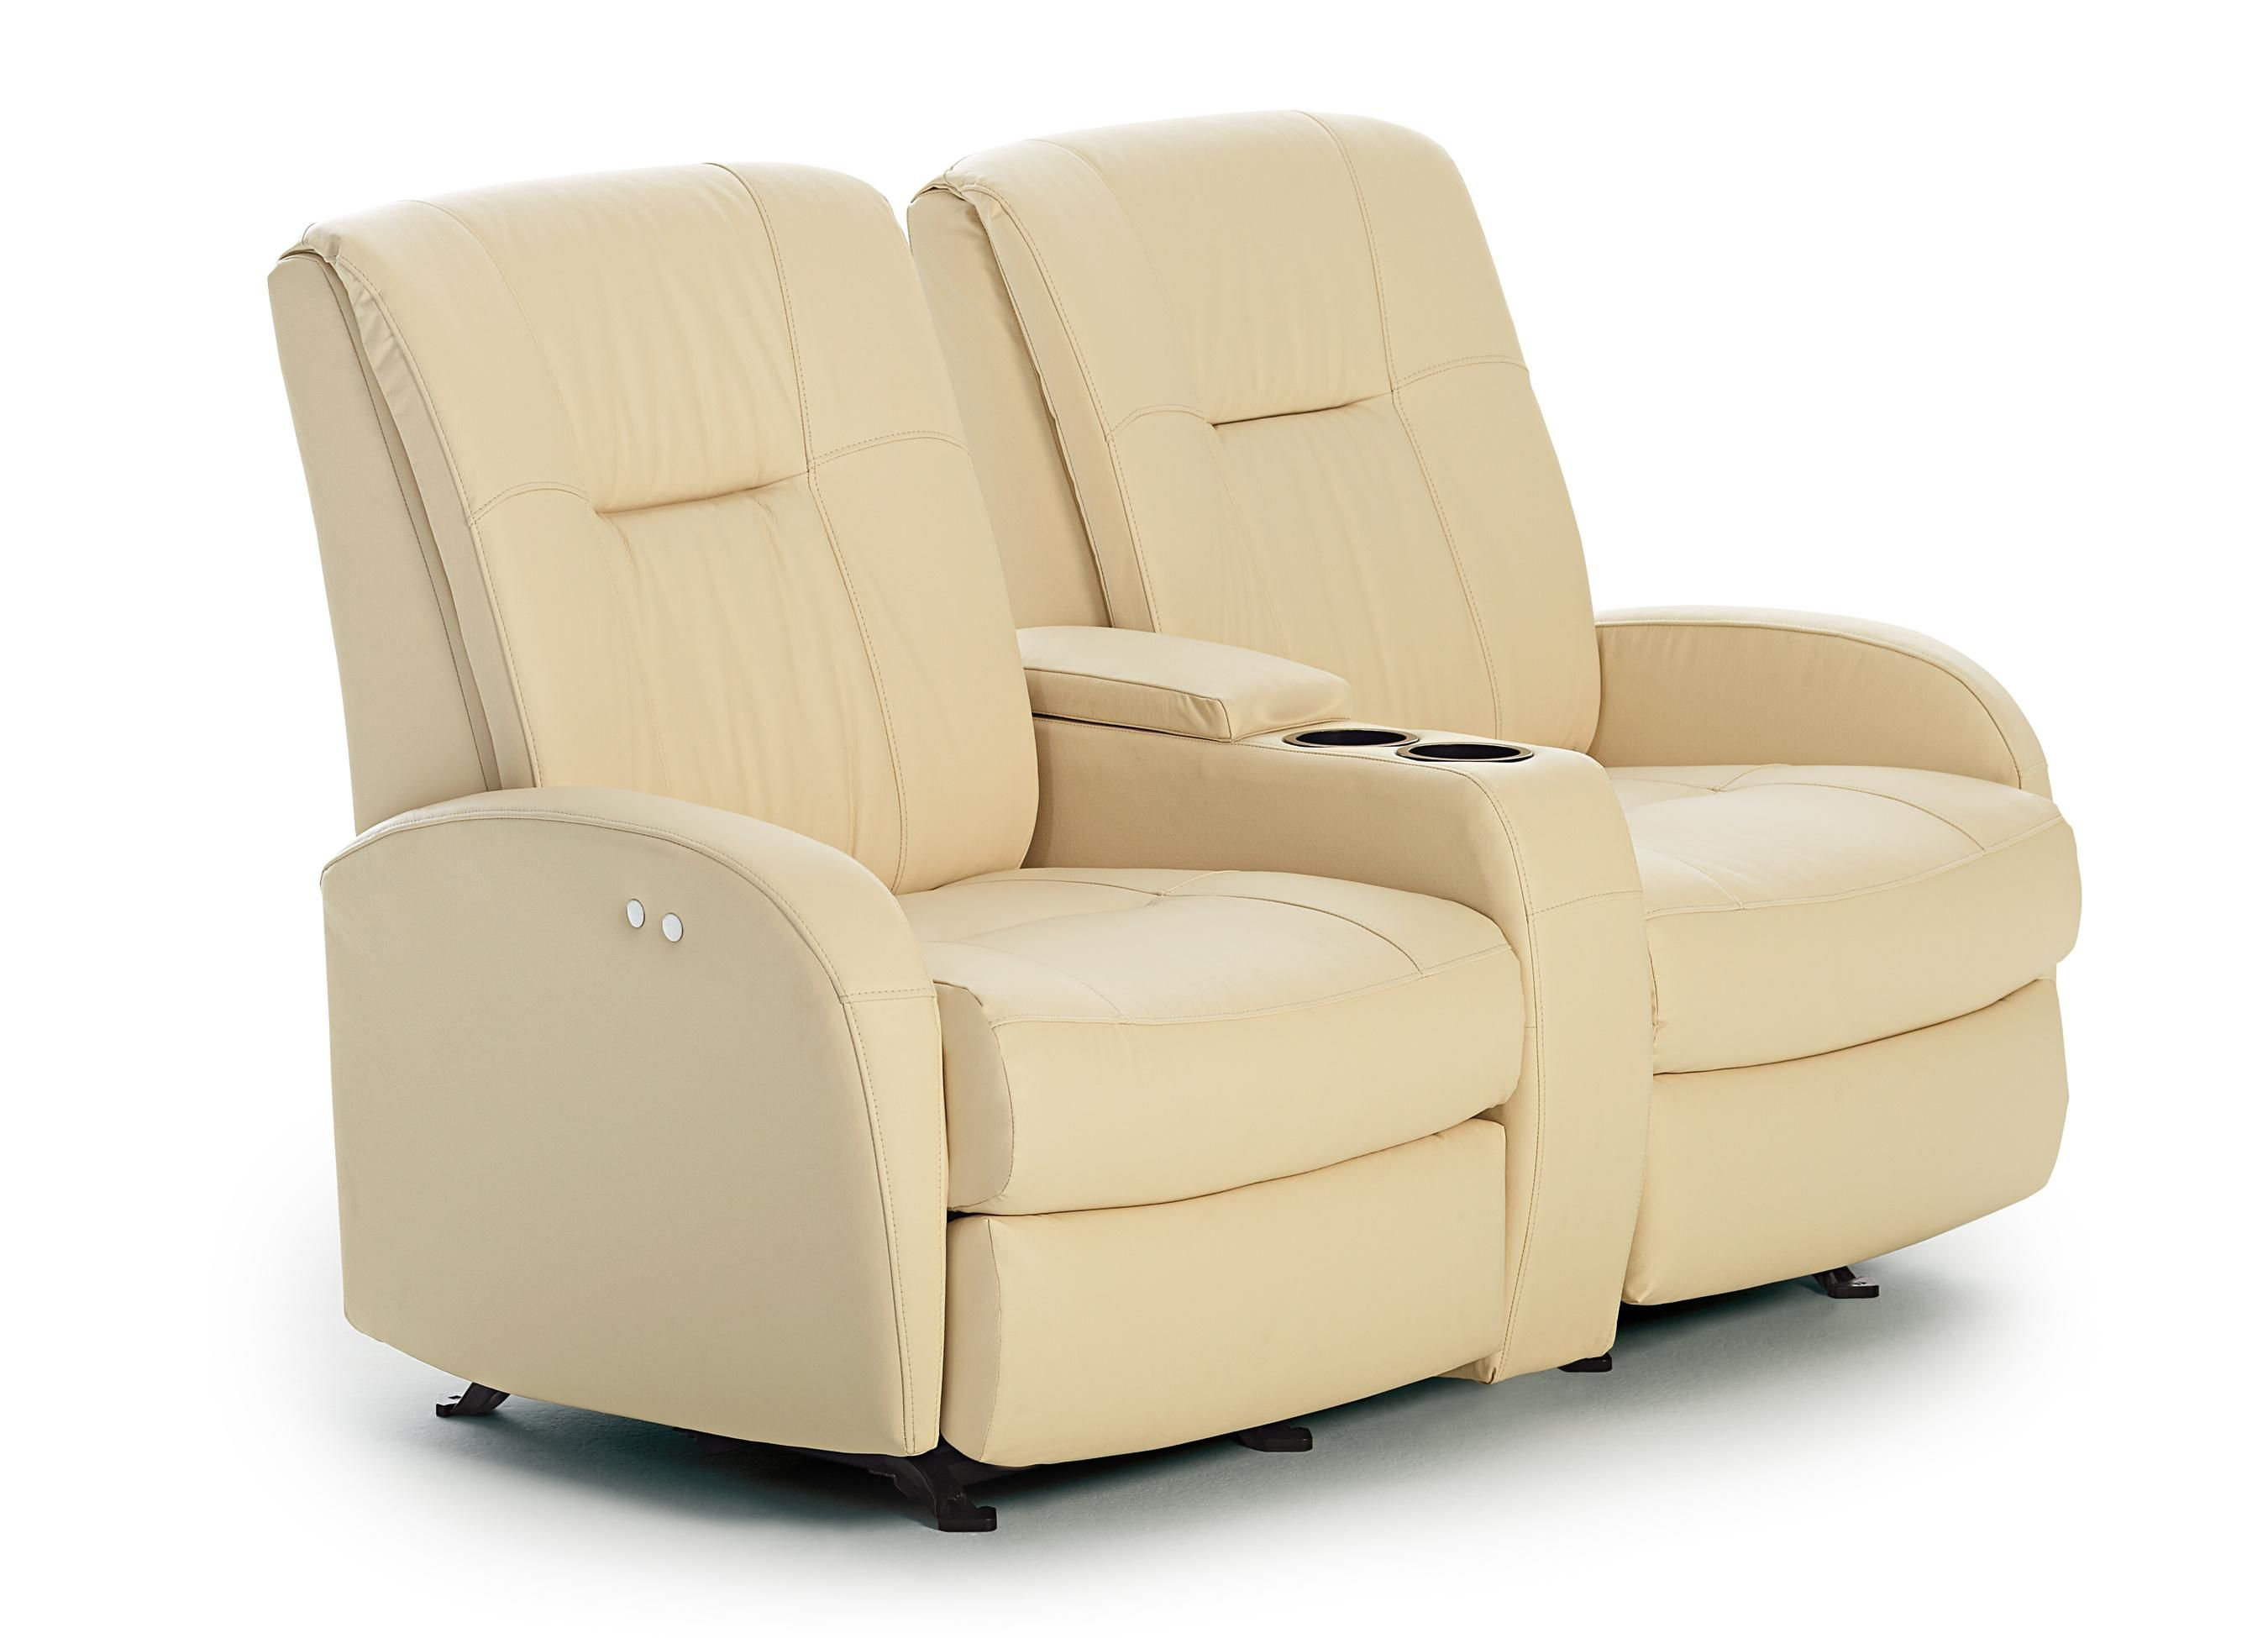 Small reclining loveseat contemporary space saver power reclining loveseat wtih drink Rocking loveseats